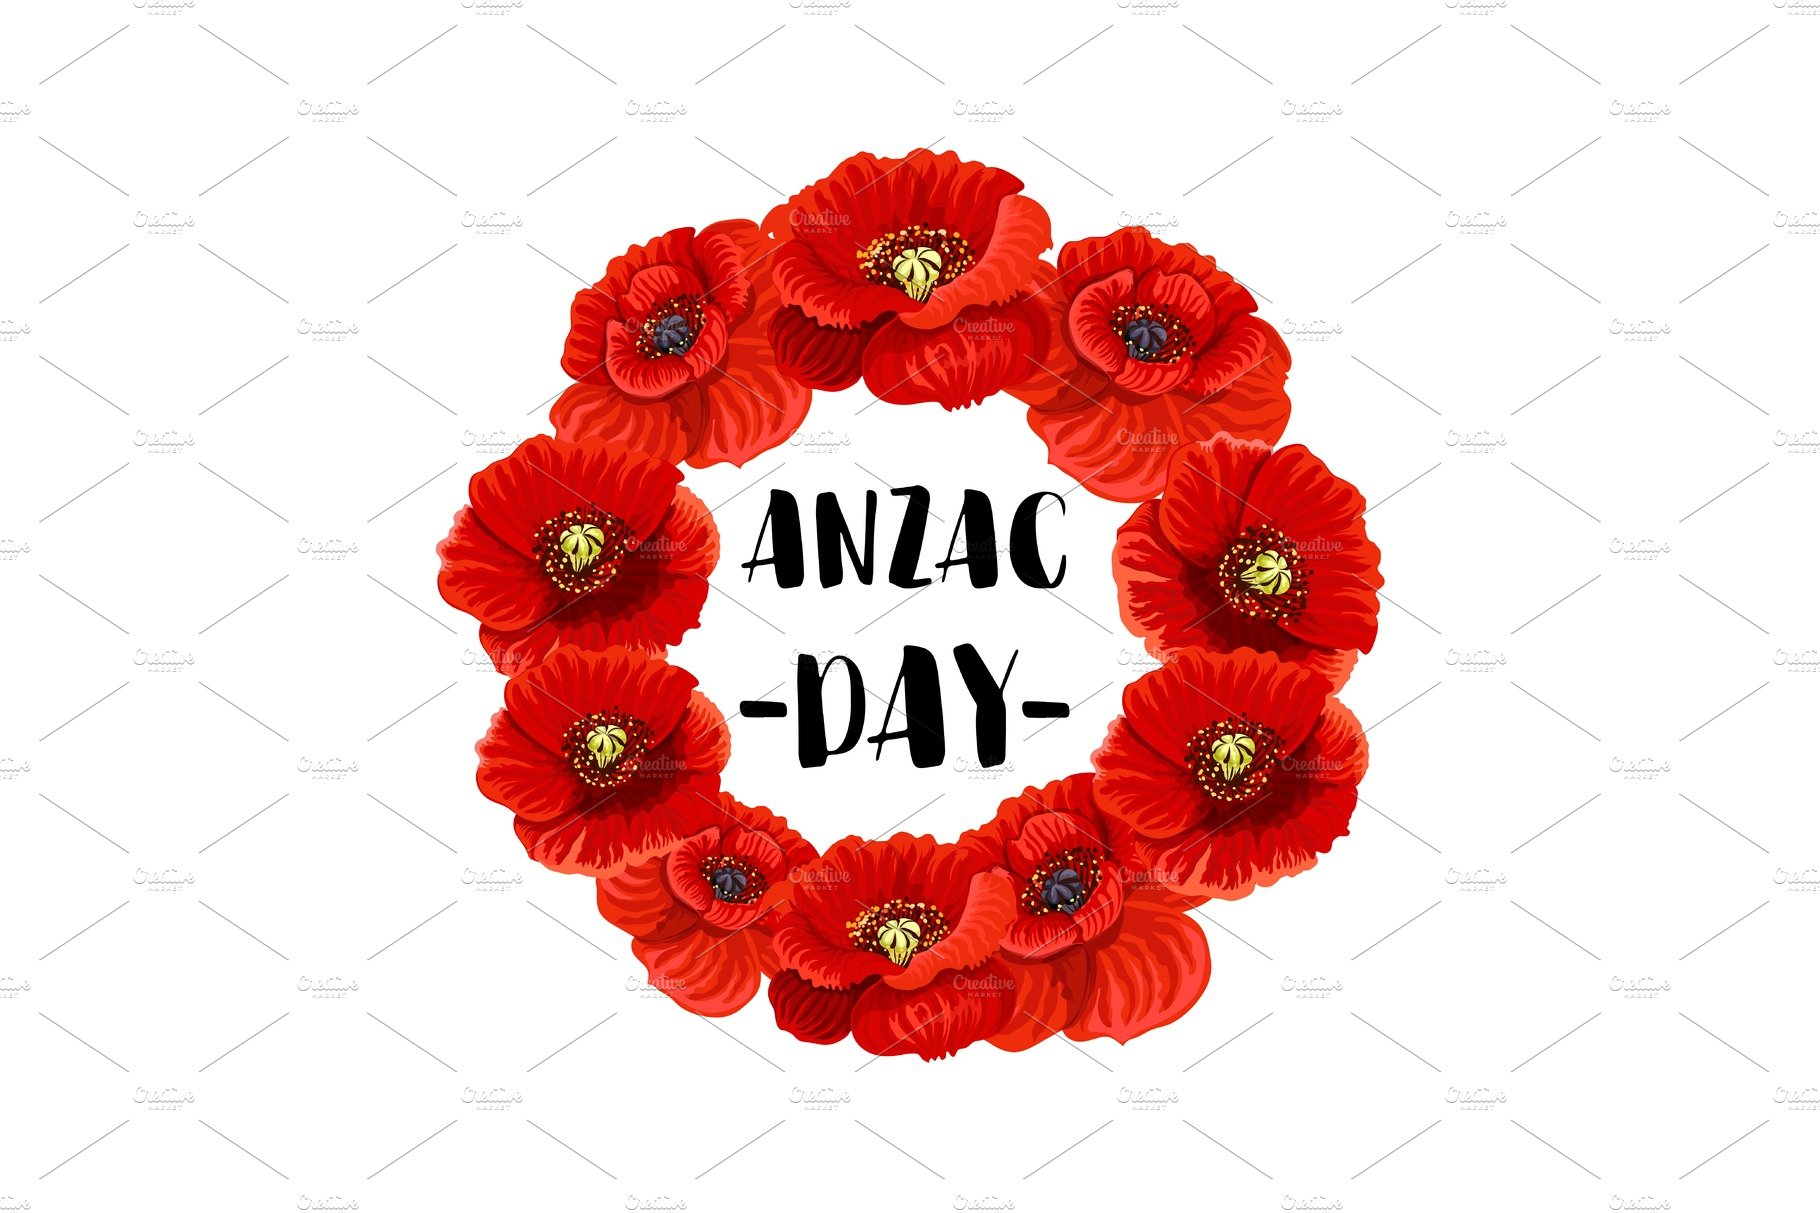 Anzac Day Memorial Wreath Icon Of Red Poppy Flower Illustrations